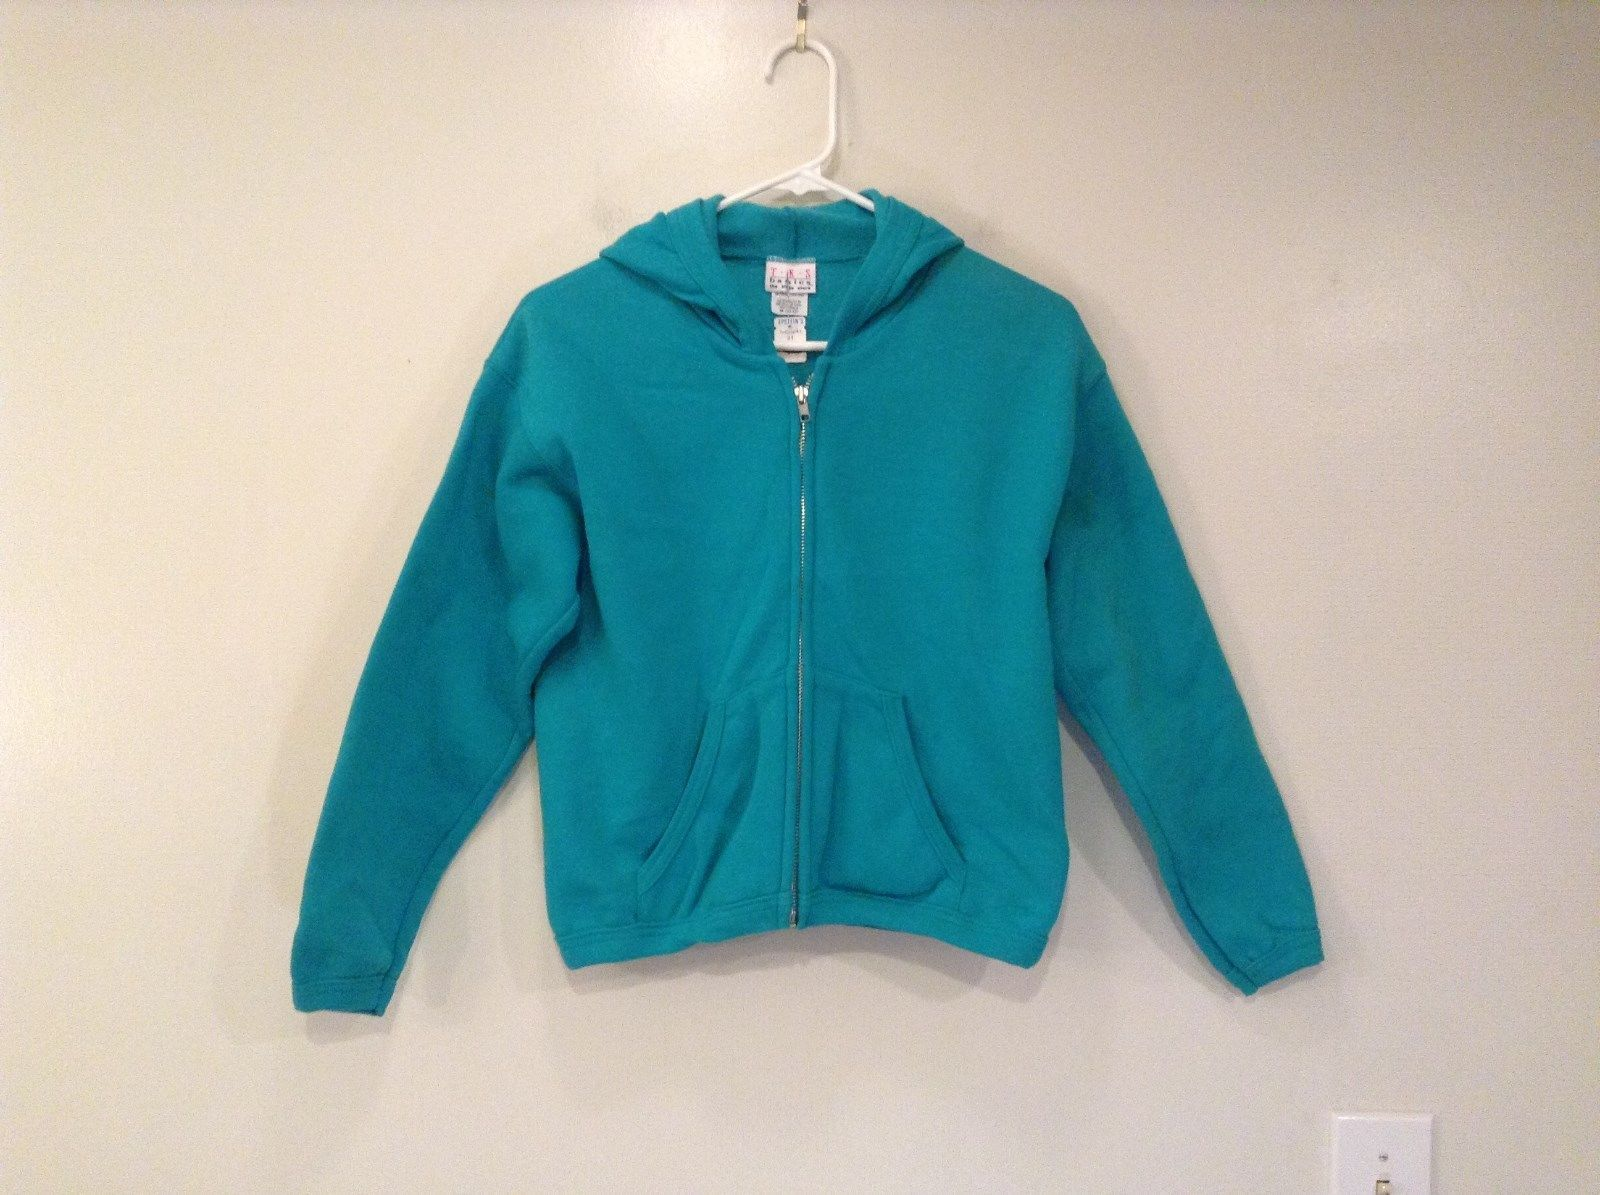 TKS Green Blue Hooded Sweatshirt Front Zipper Front Pockets Size M 10 to 12